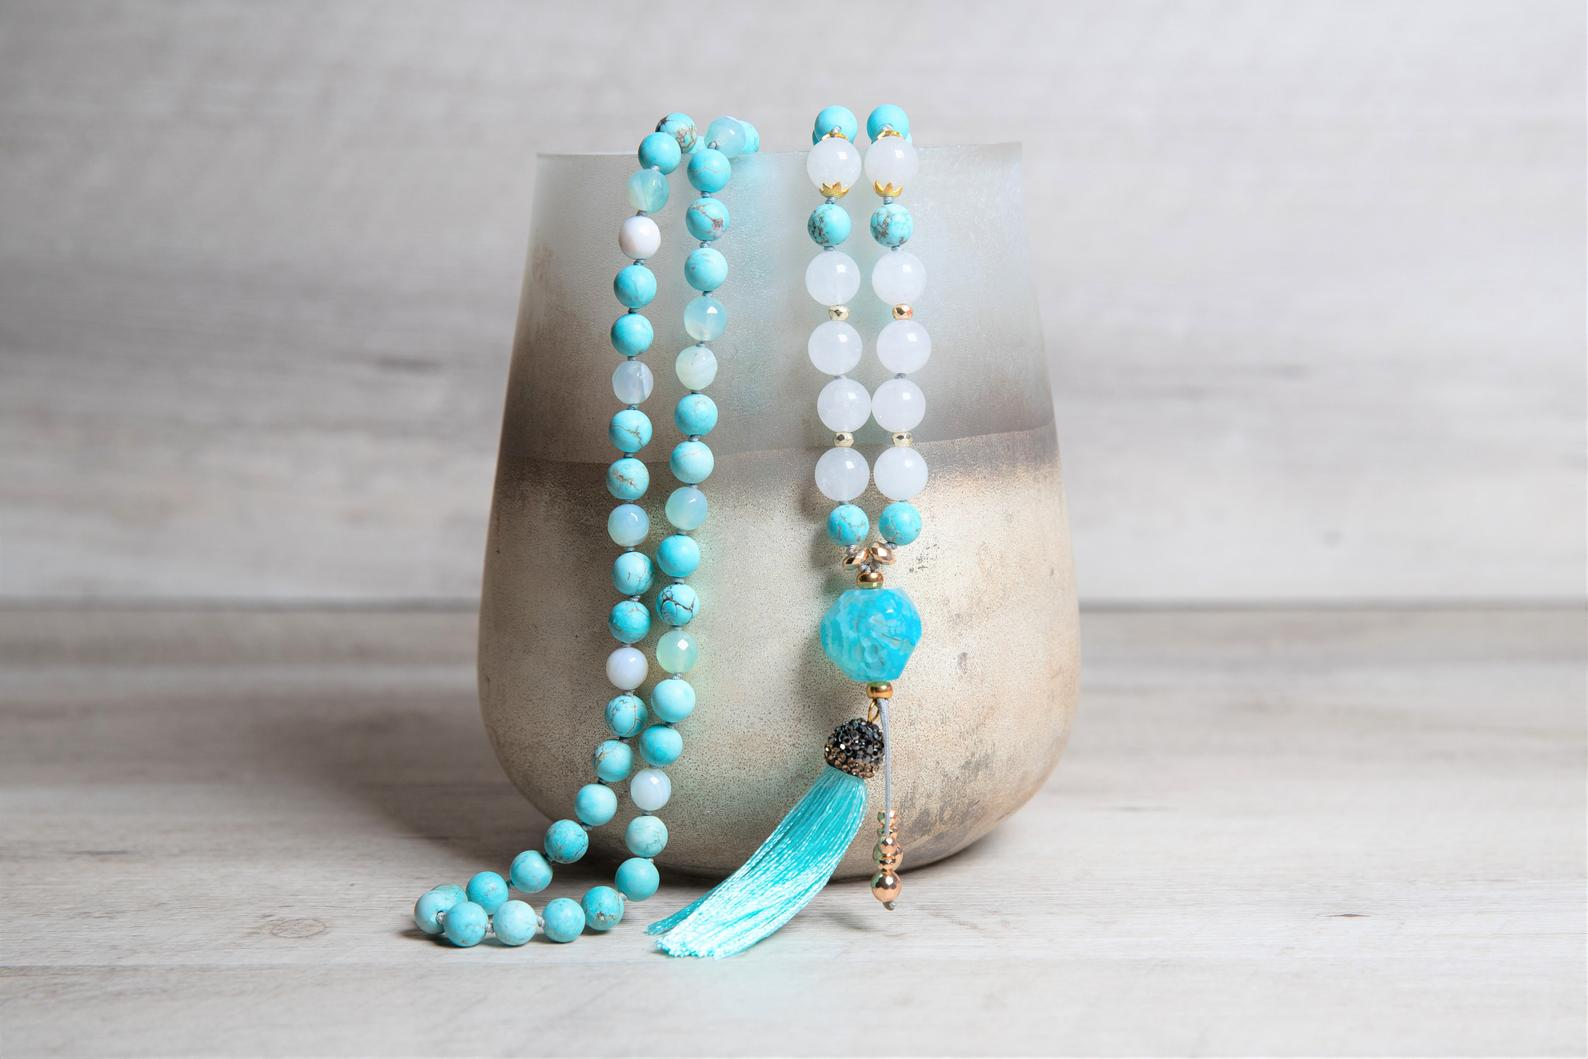 Genuine Turquoise n' White Jade Mala, Raw Agate Guru, Paved Cap Tassel, Long Boho Necklace for Women, 11th Anniversary Gift for Wife